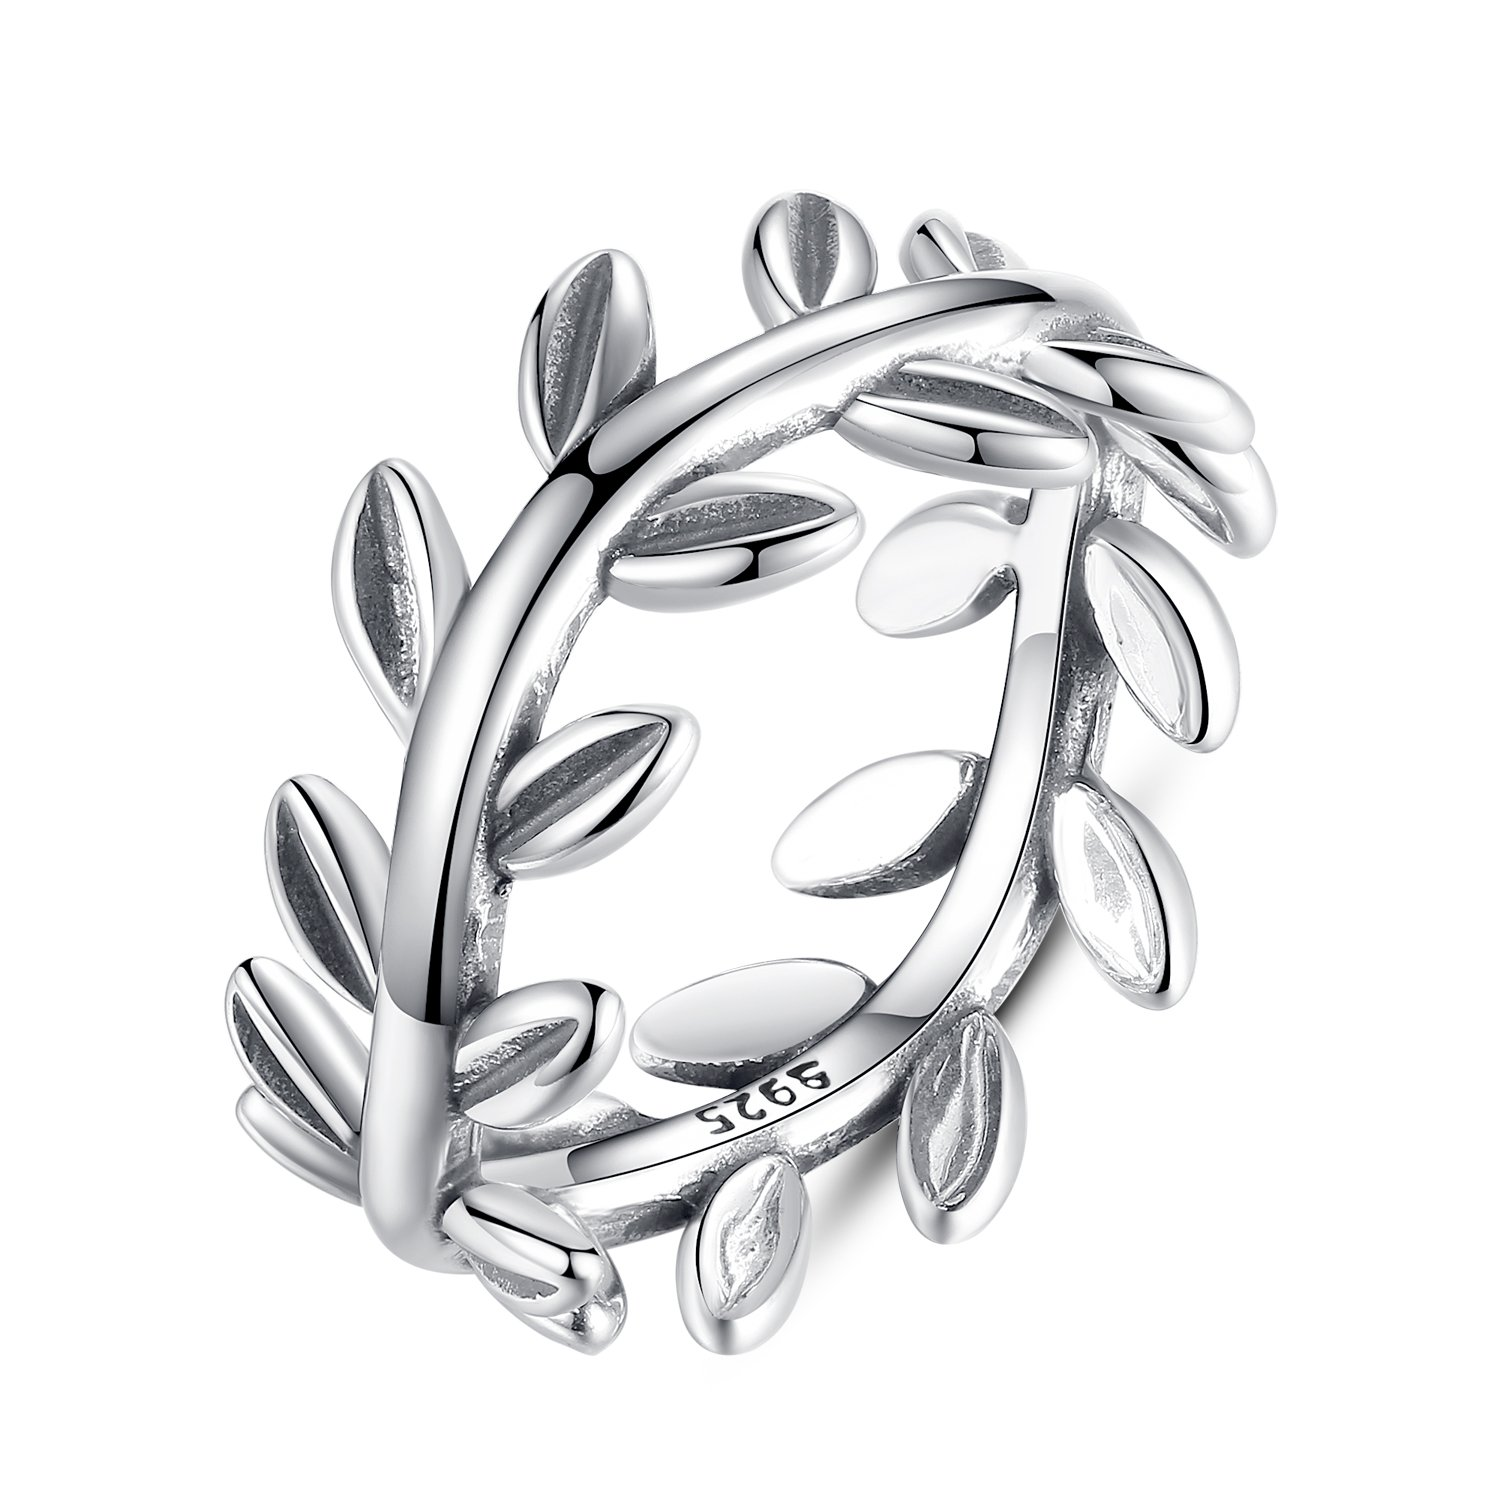 BAMOER 925 Sterling Silver lucky Collection Laurel Wreath Olive Leaves Promise Ring Design for Women Mother's Day Gifts Size 7-8 (8)